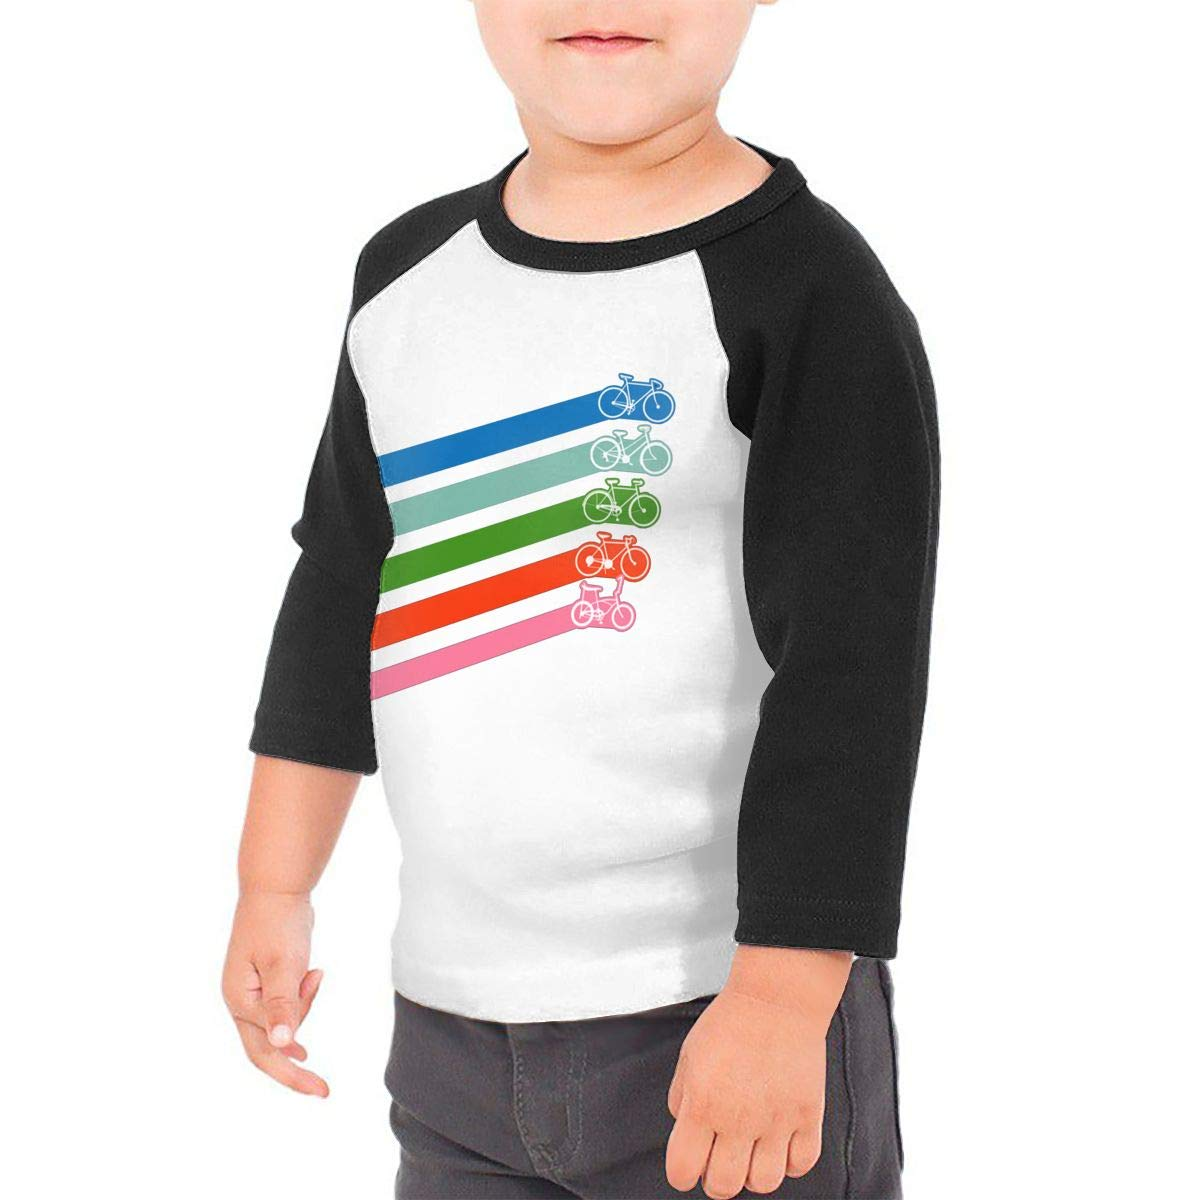 yimo Retro Bike Stripes Unisex Toddler Baseball Jersey Contrast 3//4 Sleeves Tee